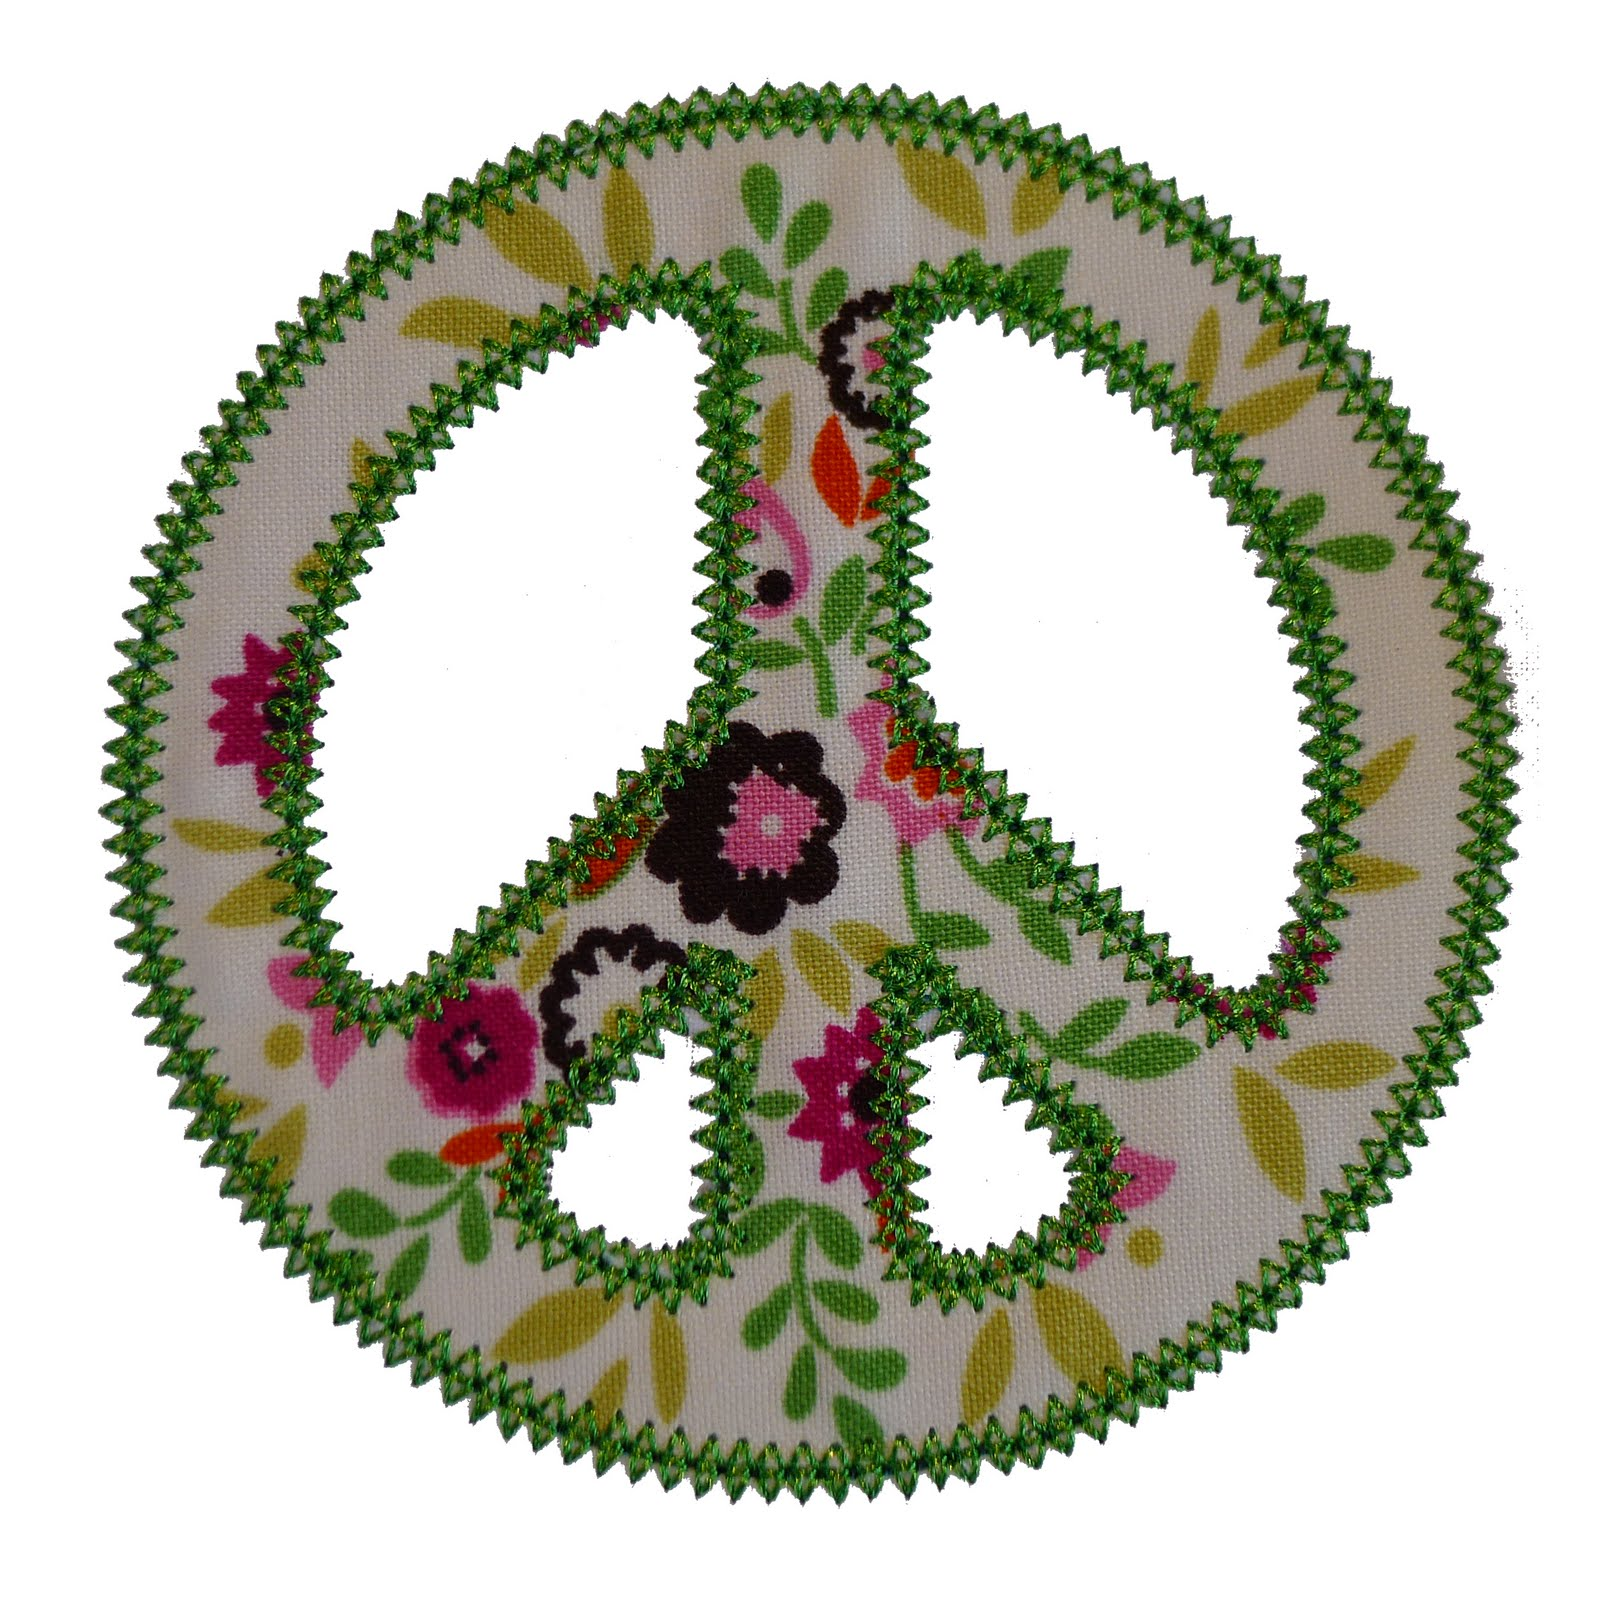 big dreams embroidery peace sign machine embroidery applique design pattern. Black Bedroom Furniture Sets. Home Design Ideas